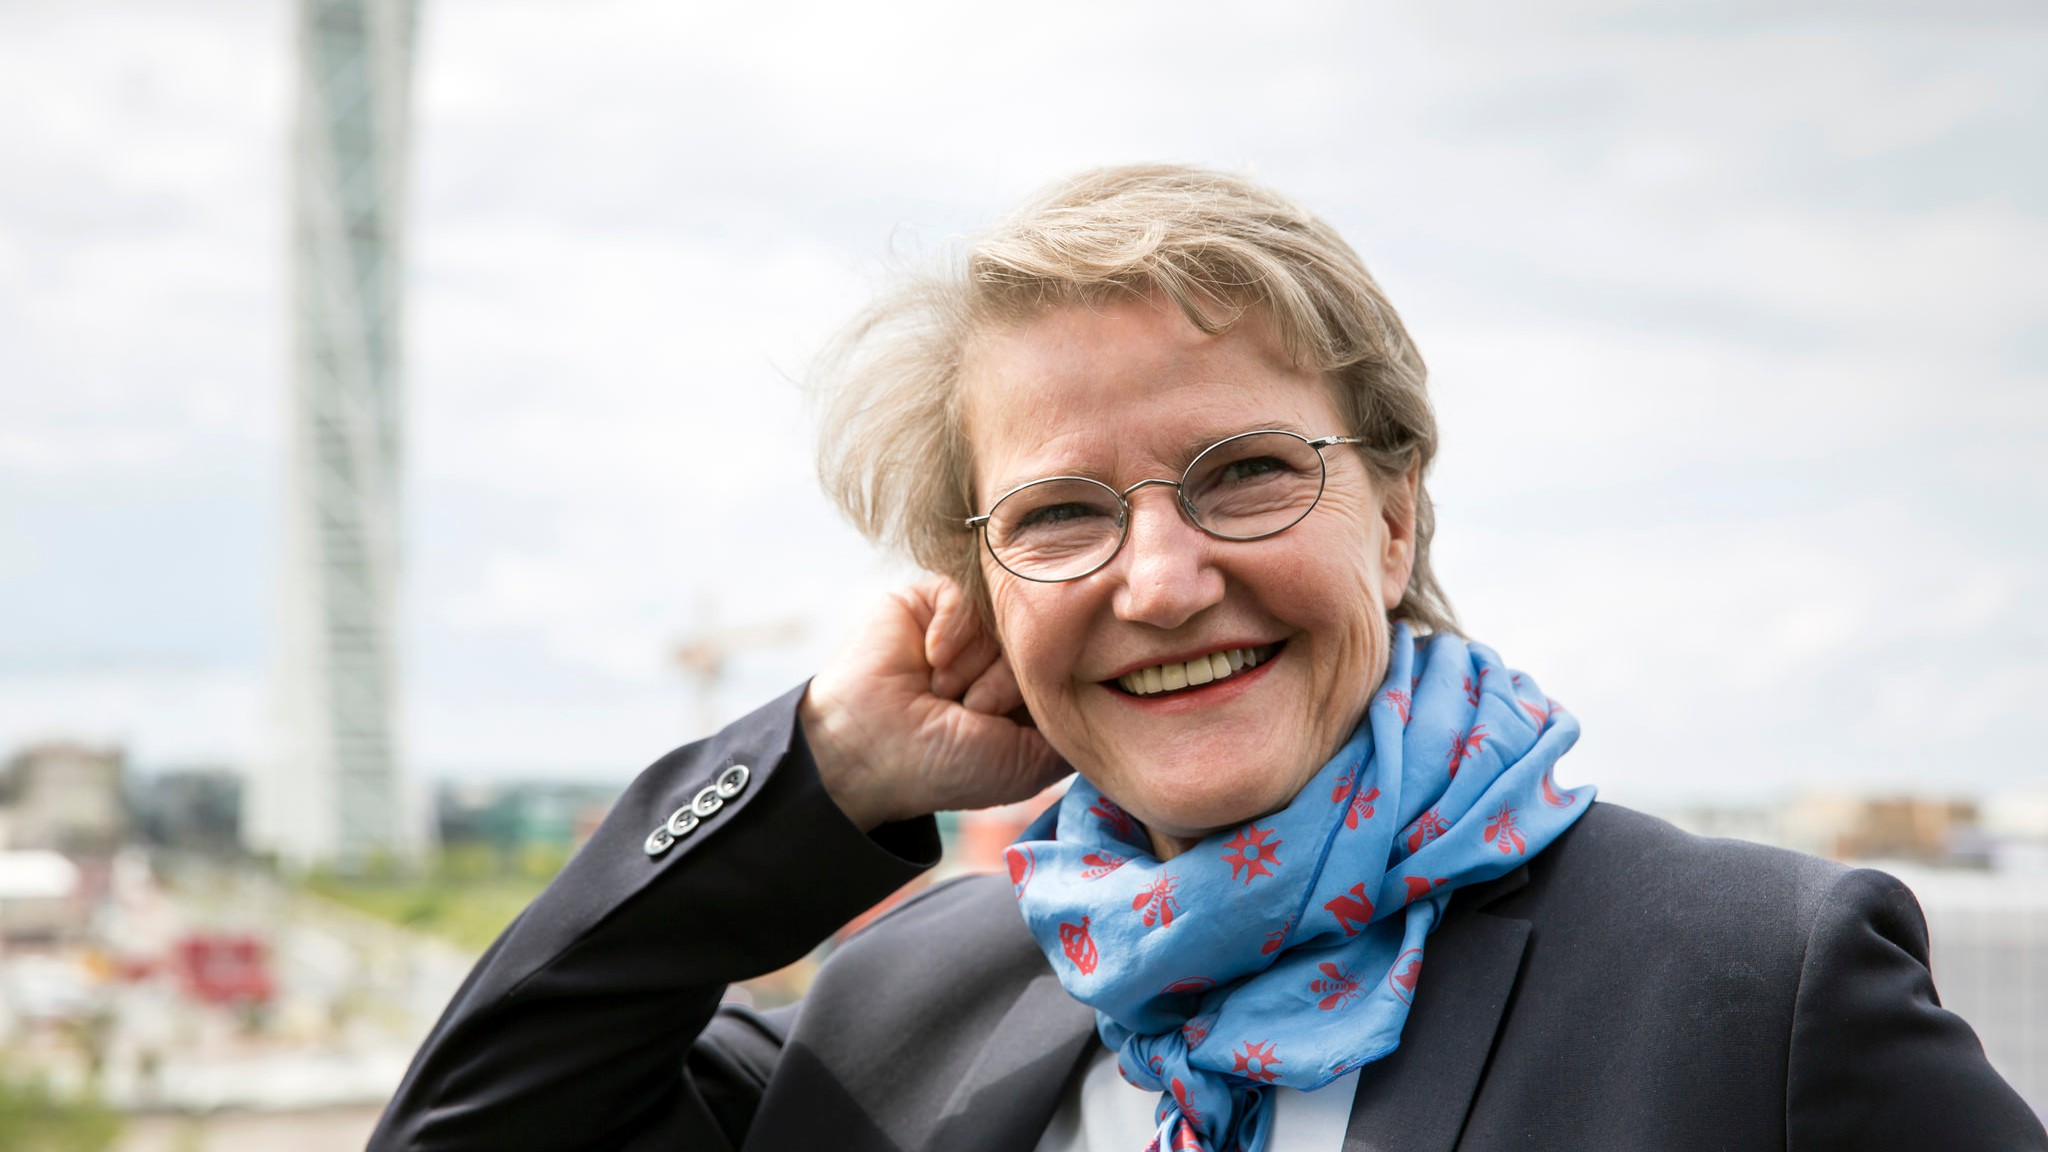 Sweden's Minister of the Future Explains How to Make Politicians Think Long-Term